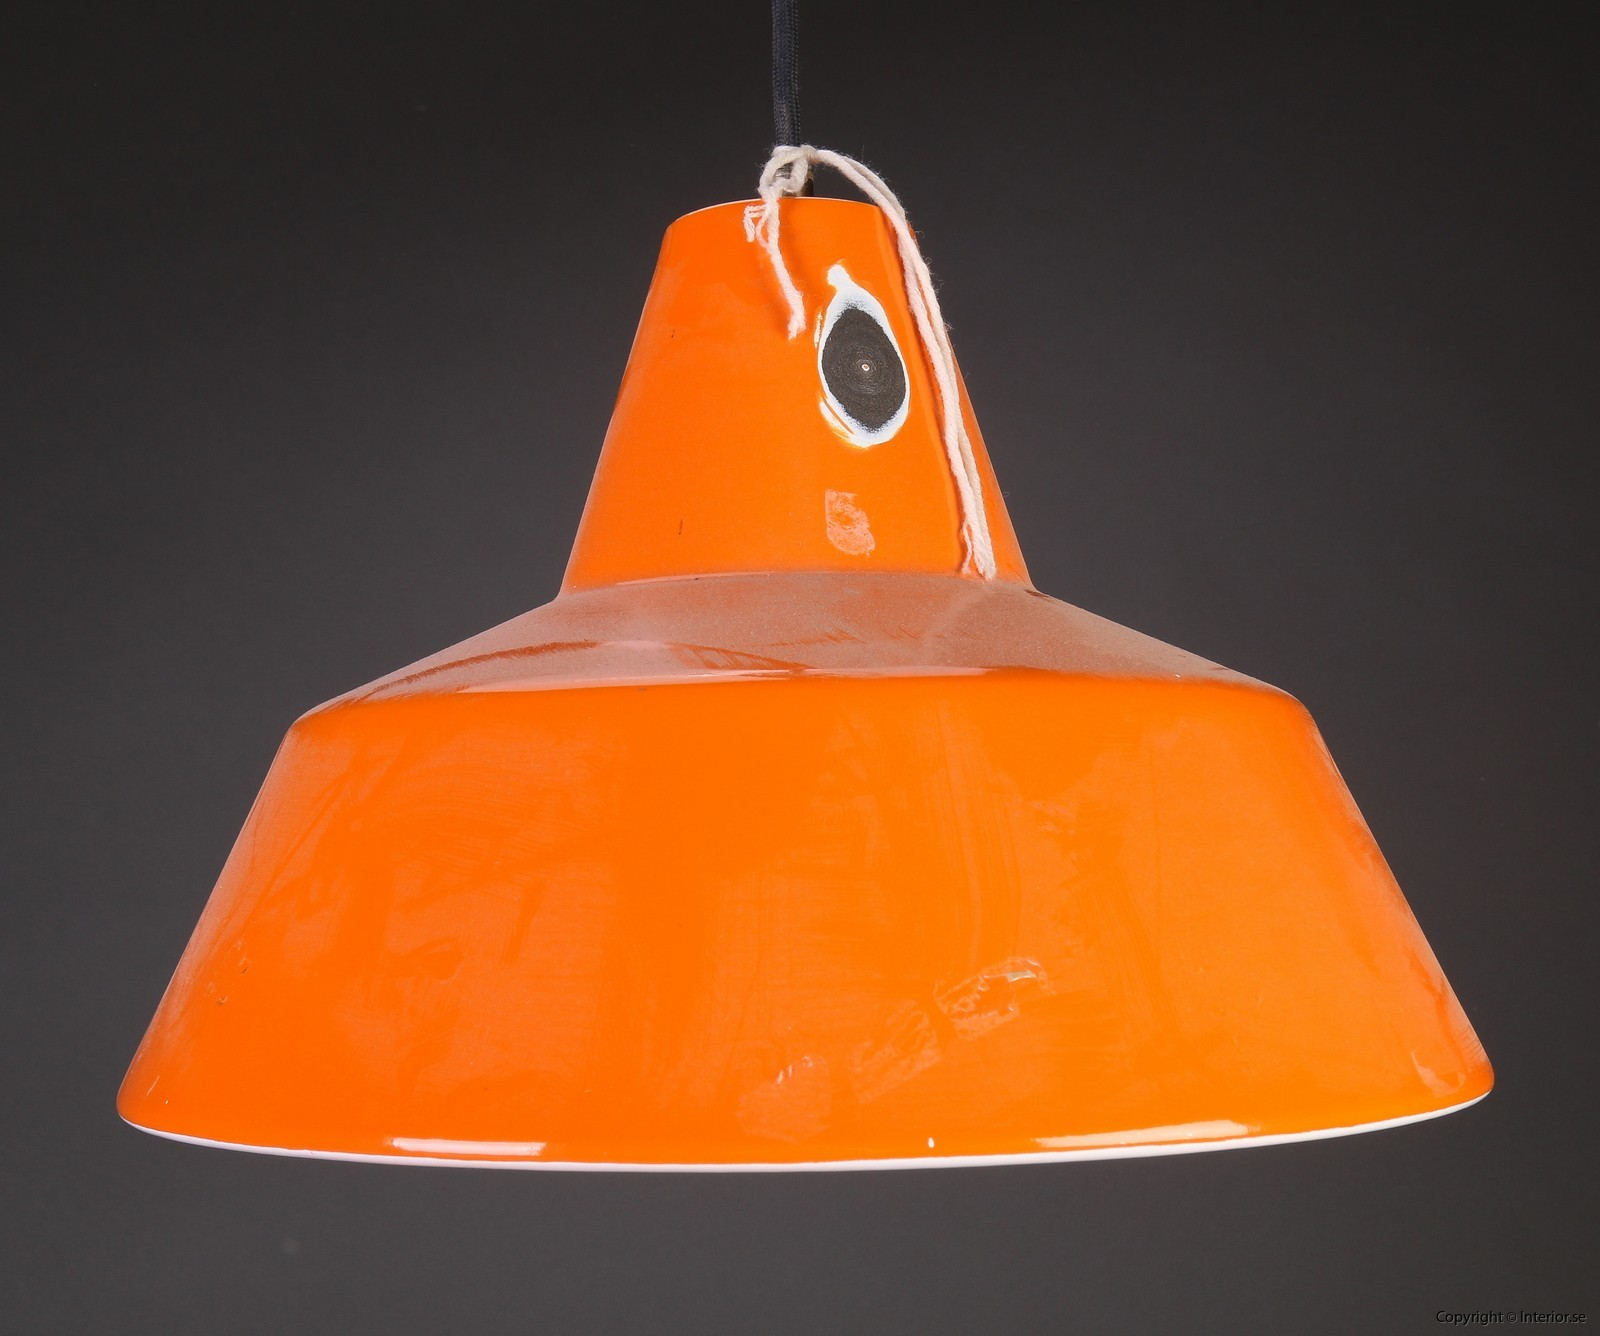 Industripendel, Louis Poulsen - Orange Industridesign 3